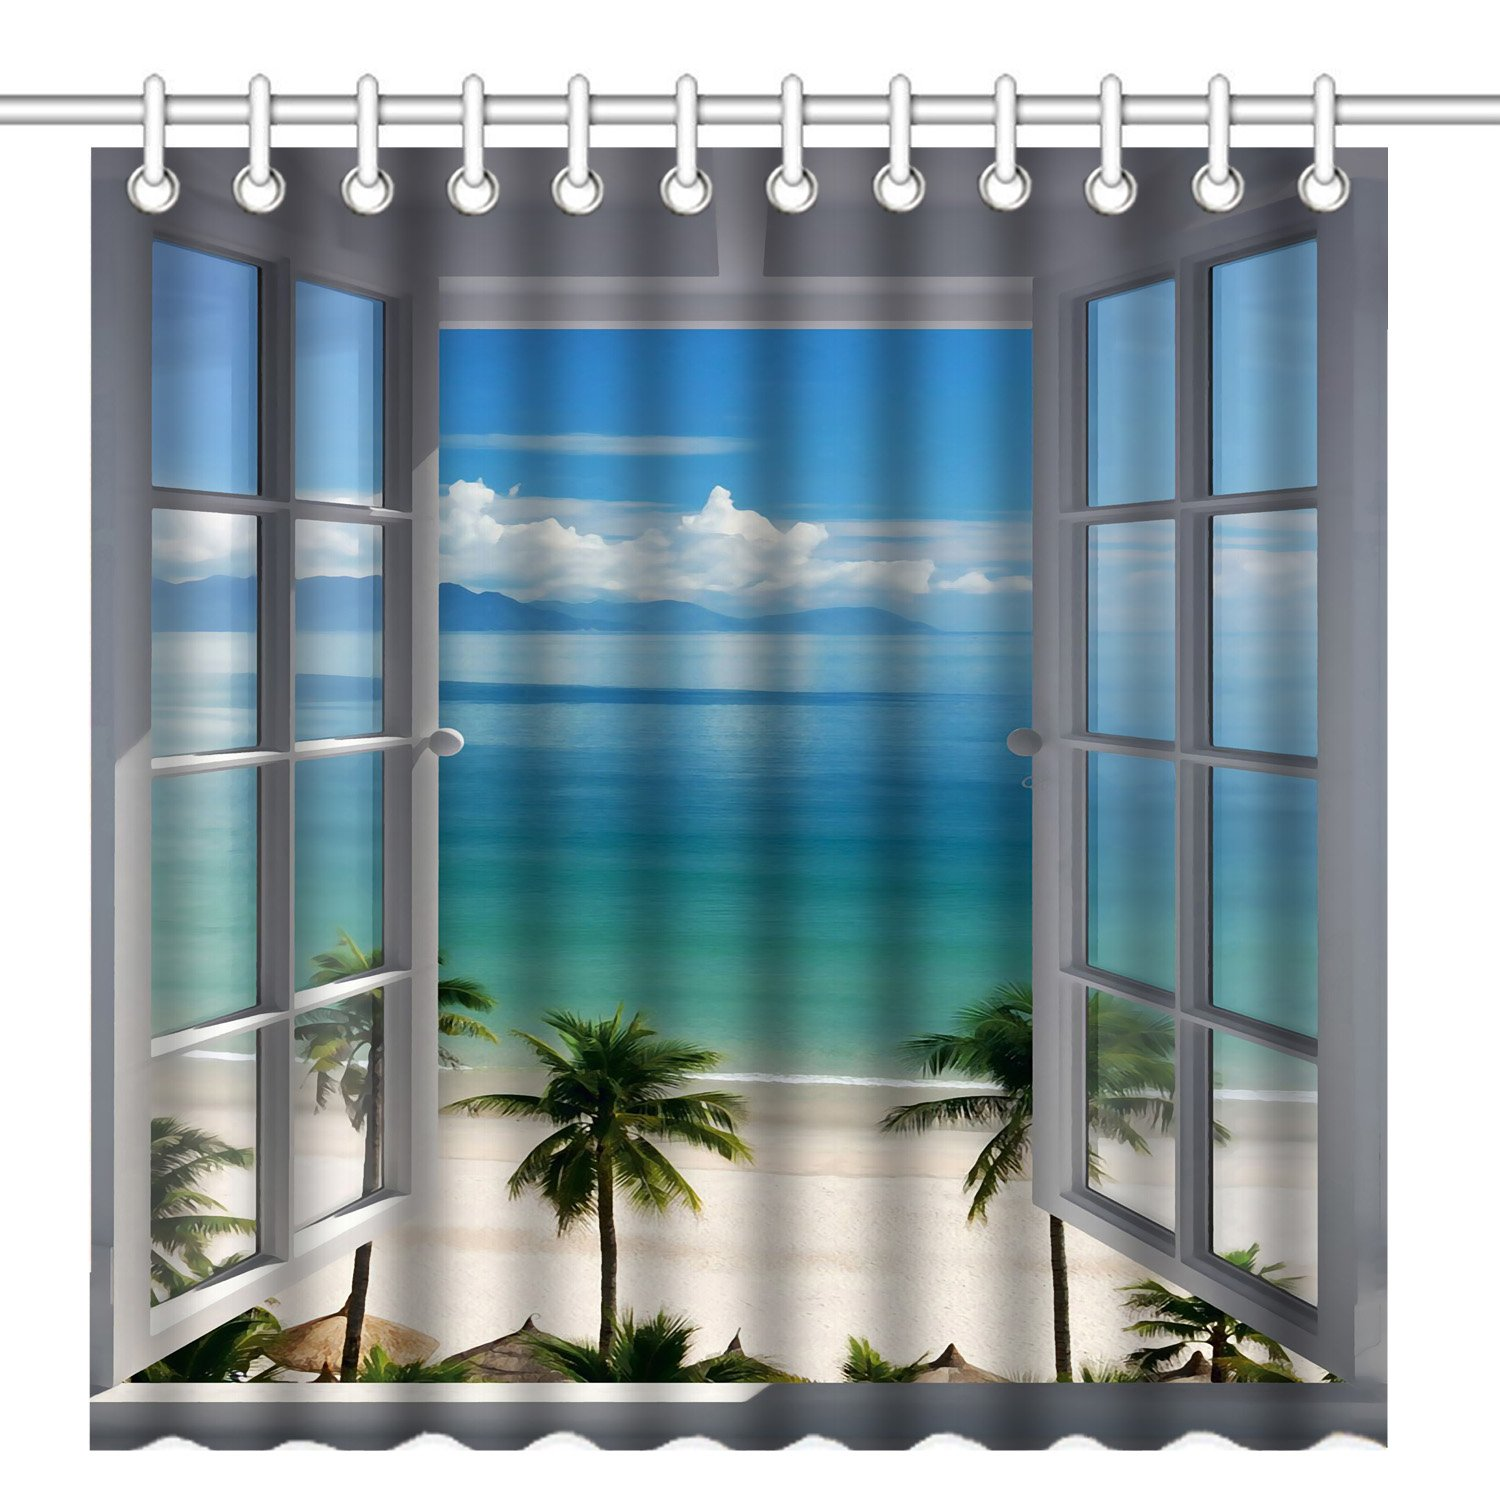 Wknoon 72 x 72 Inch Shower Curtain, Palm Trees Tropical Island Beach Scenery Nature Paradise Panoramic Picture Through Wooden Windows, Waterproof Polyester Fabric Decorative